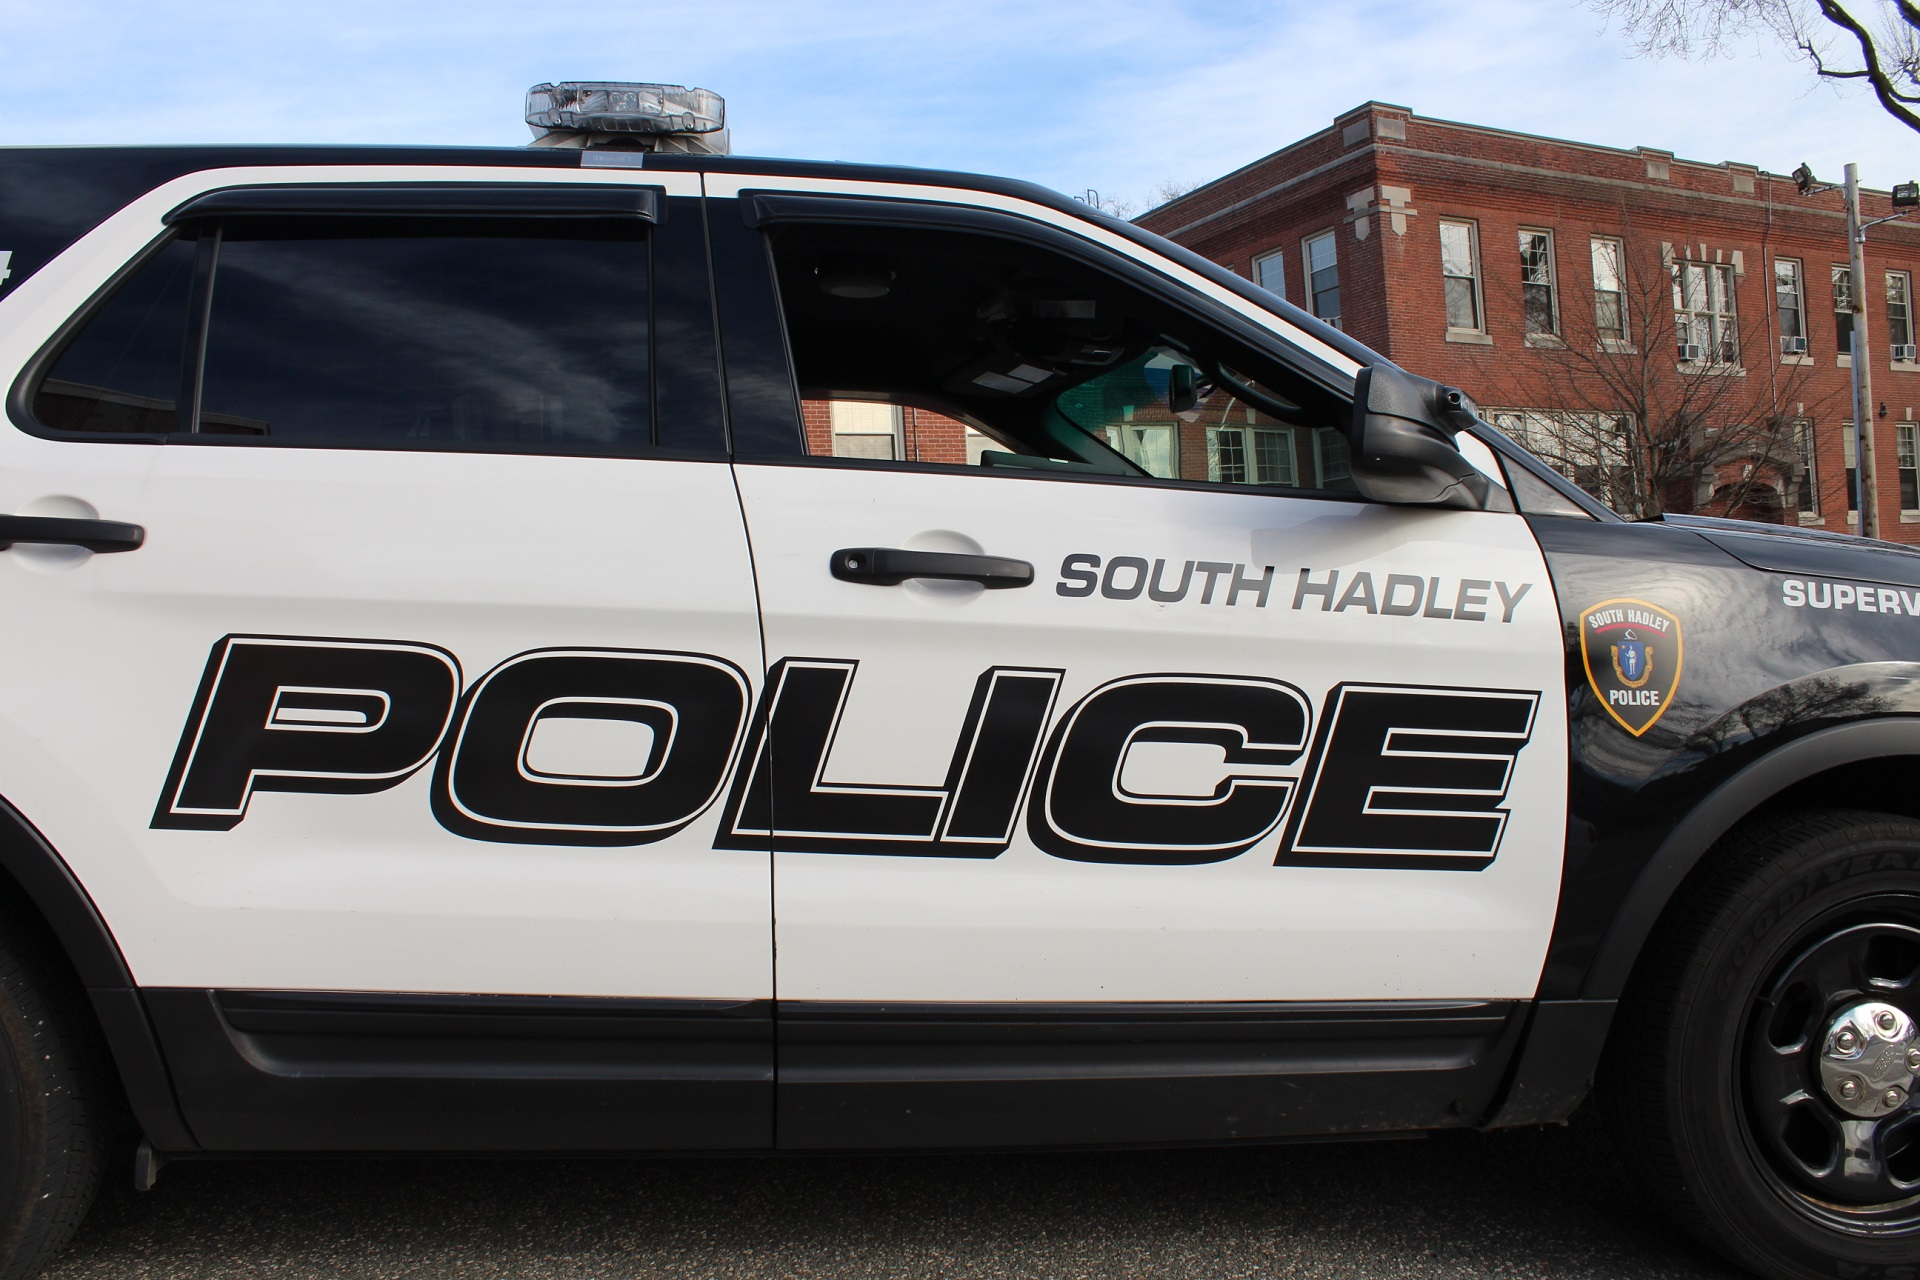 South_Hadley_Police_Vehicle_1524833328864.jpg